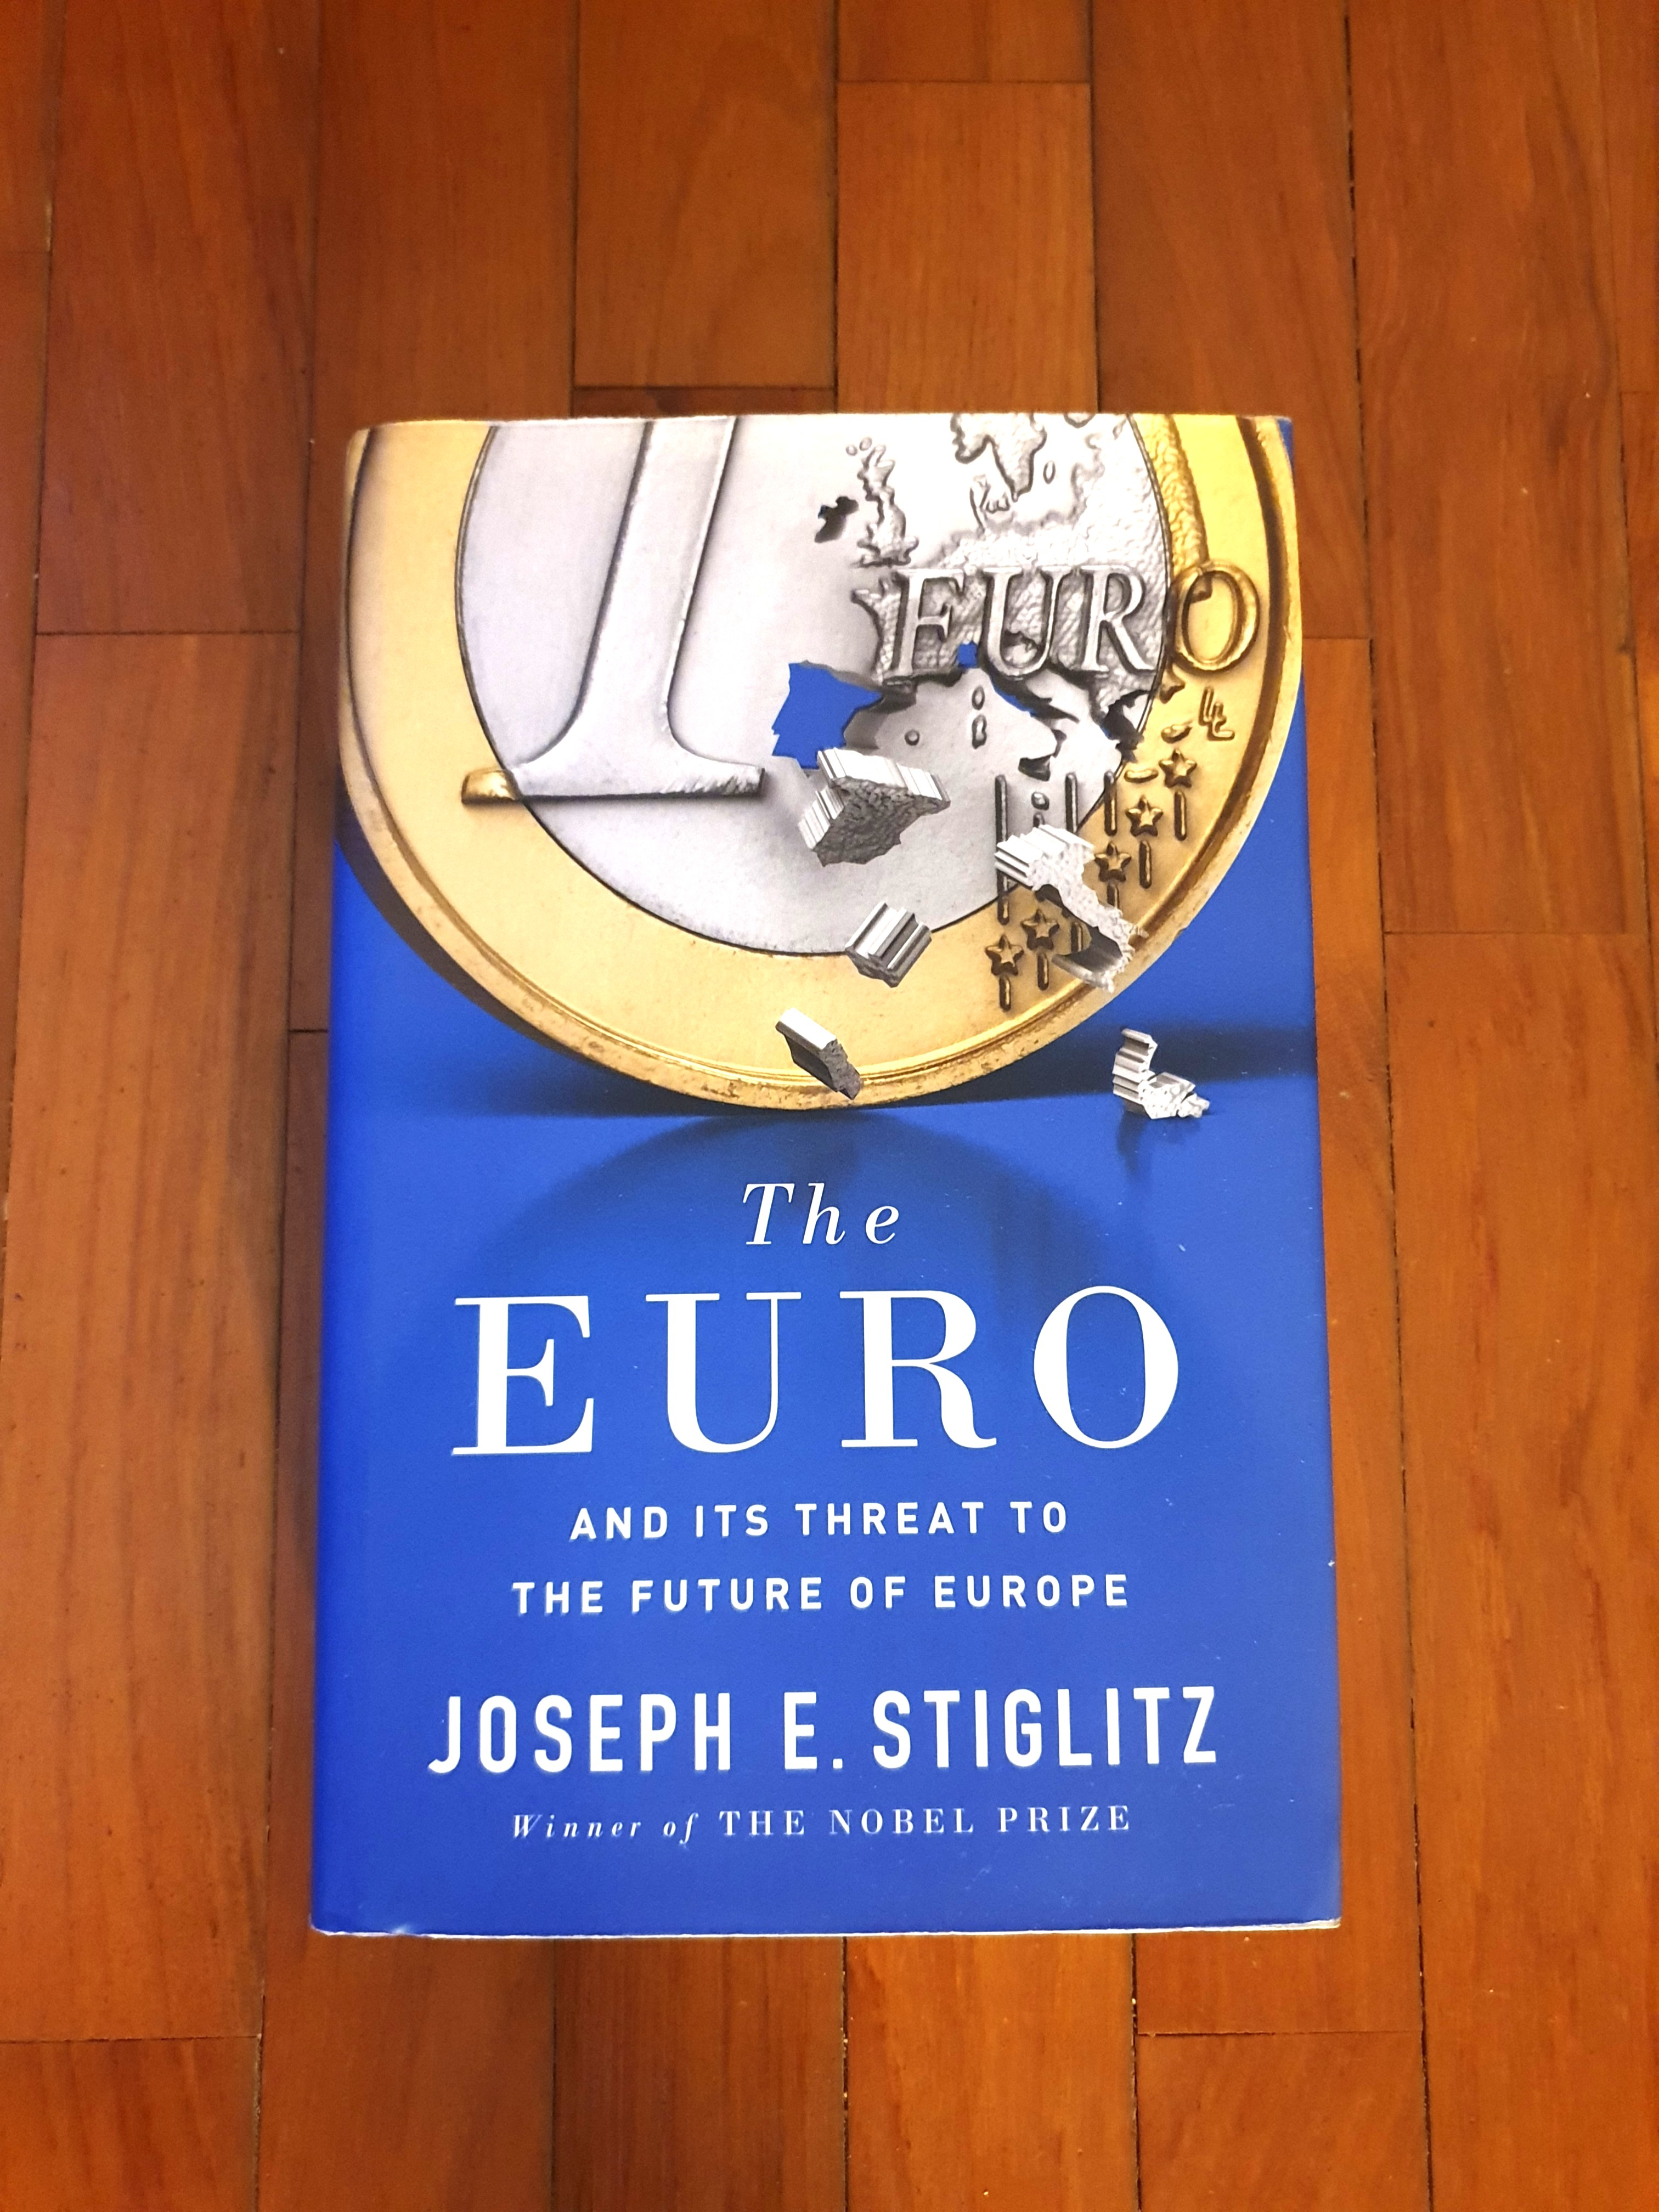 e7946b318 The Euro : And its Threat to the Future of Europe by Joseph E Stiglitz,  Books & Stationery, Non-Fiction on Carousell